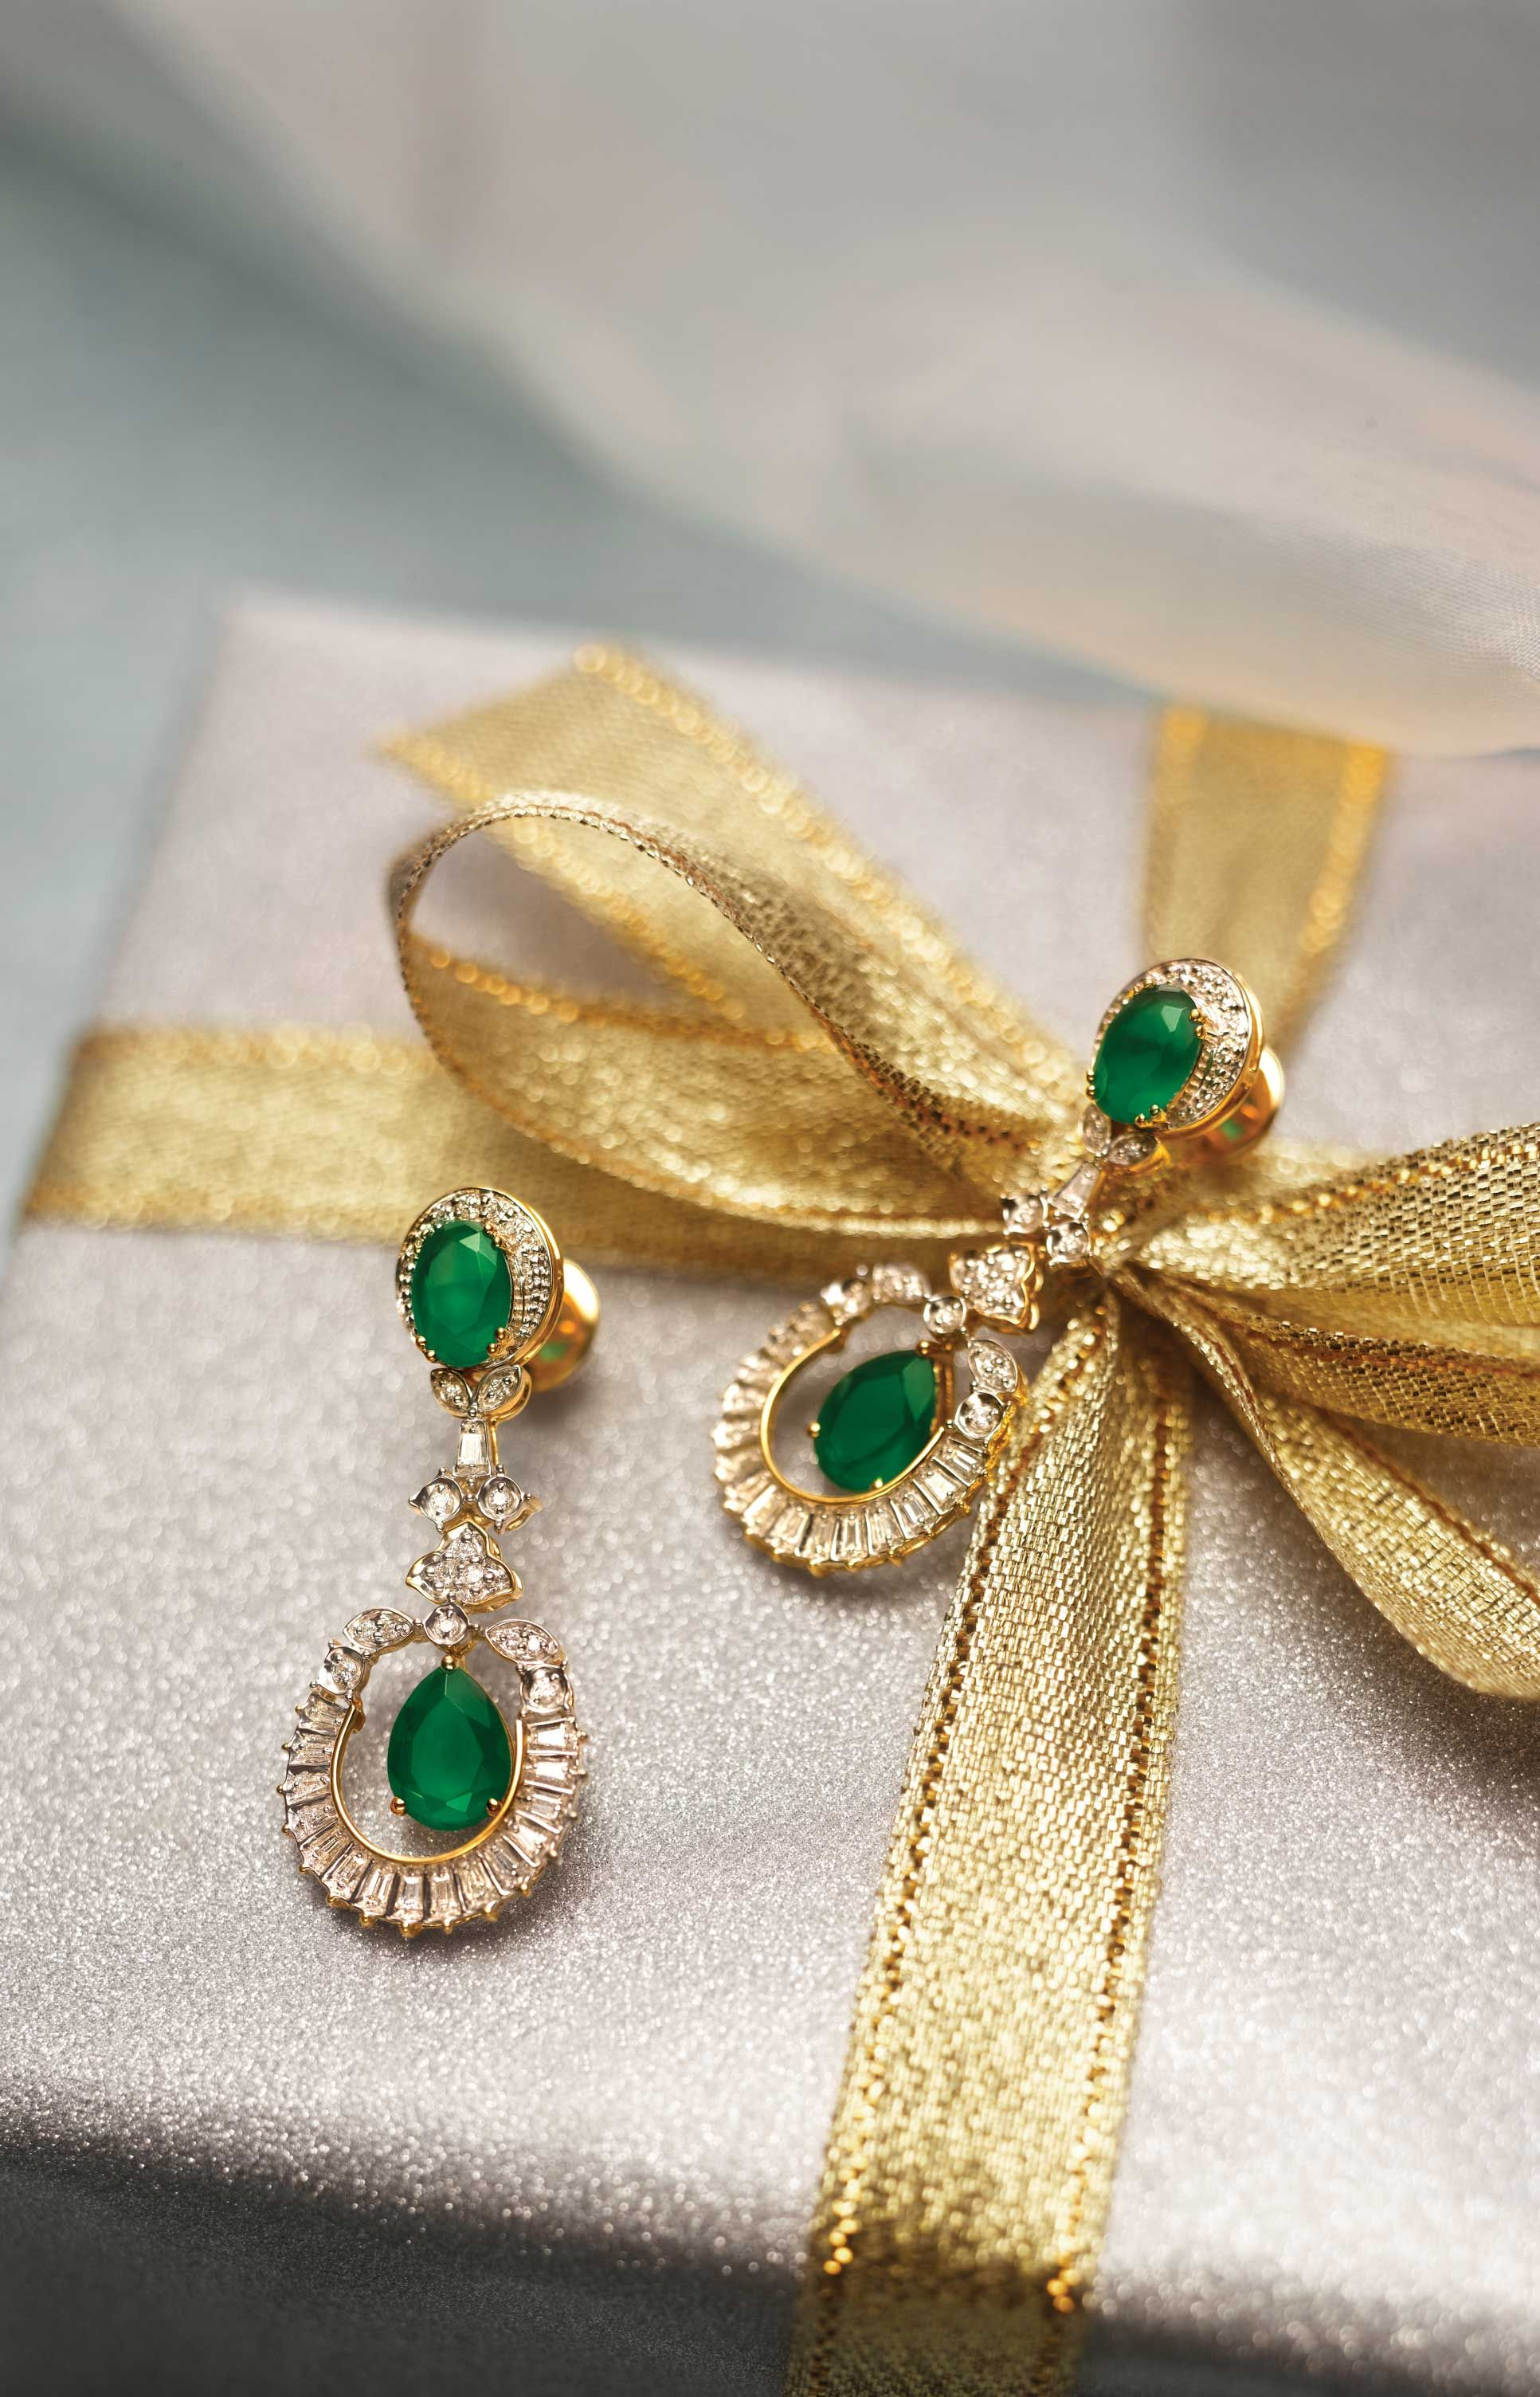 Gold diamond emerald earrings | Earnings | Pinterest | Emeralds ...